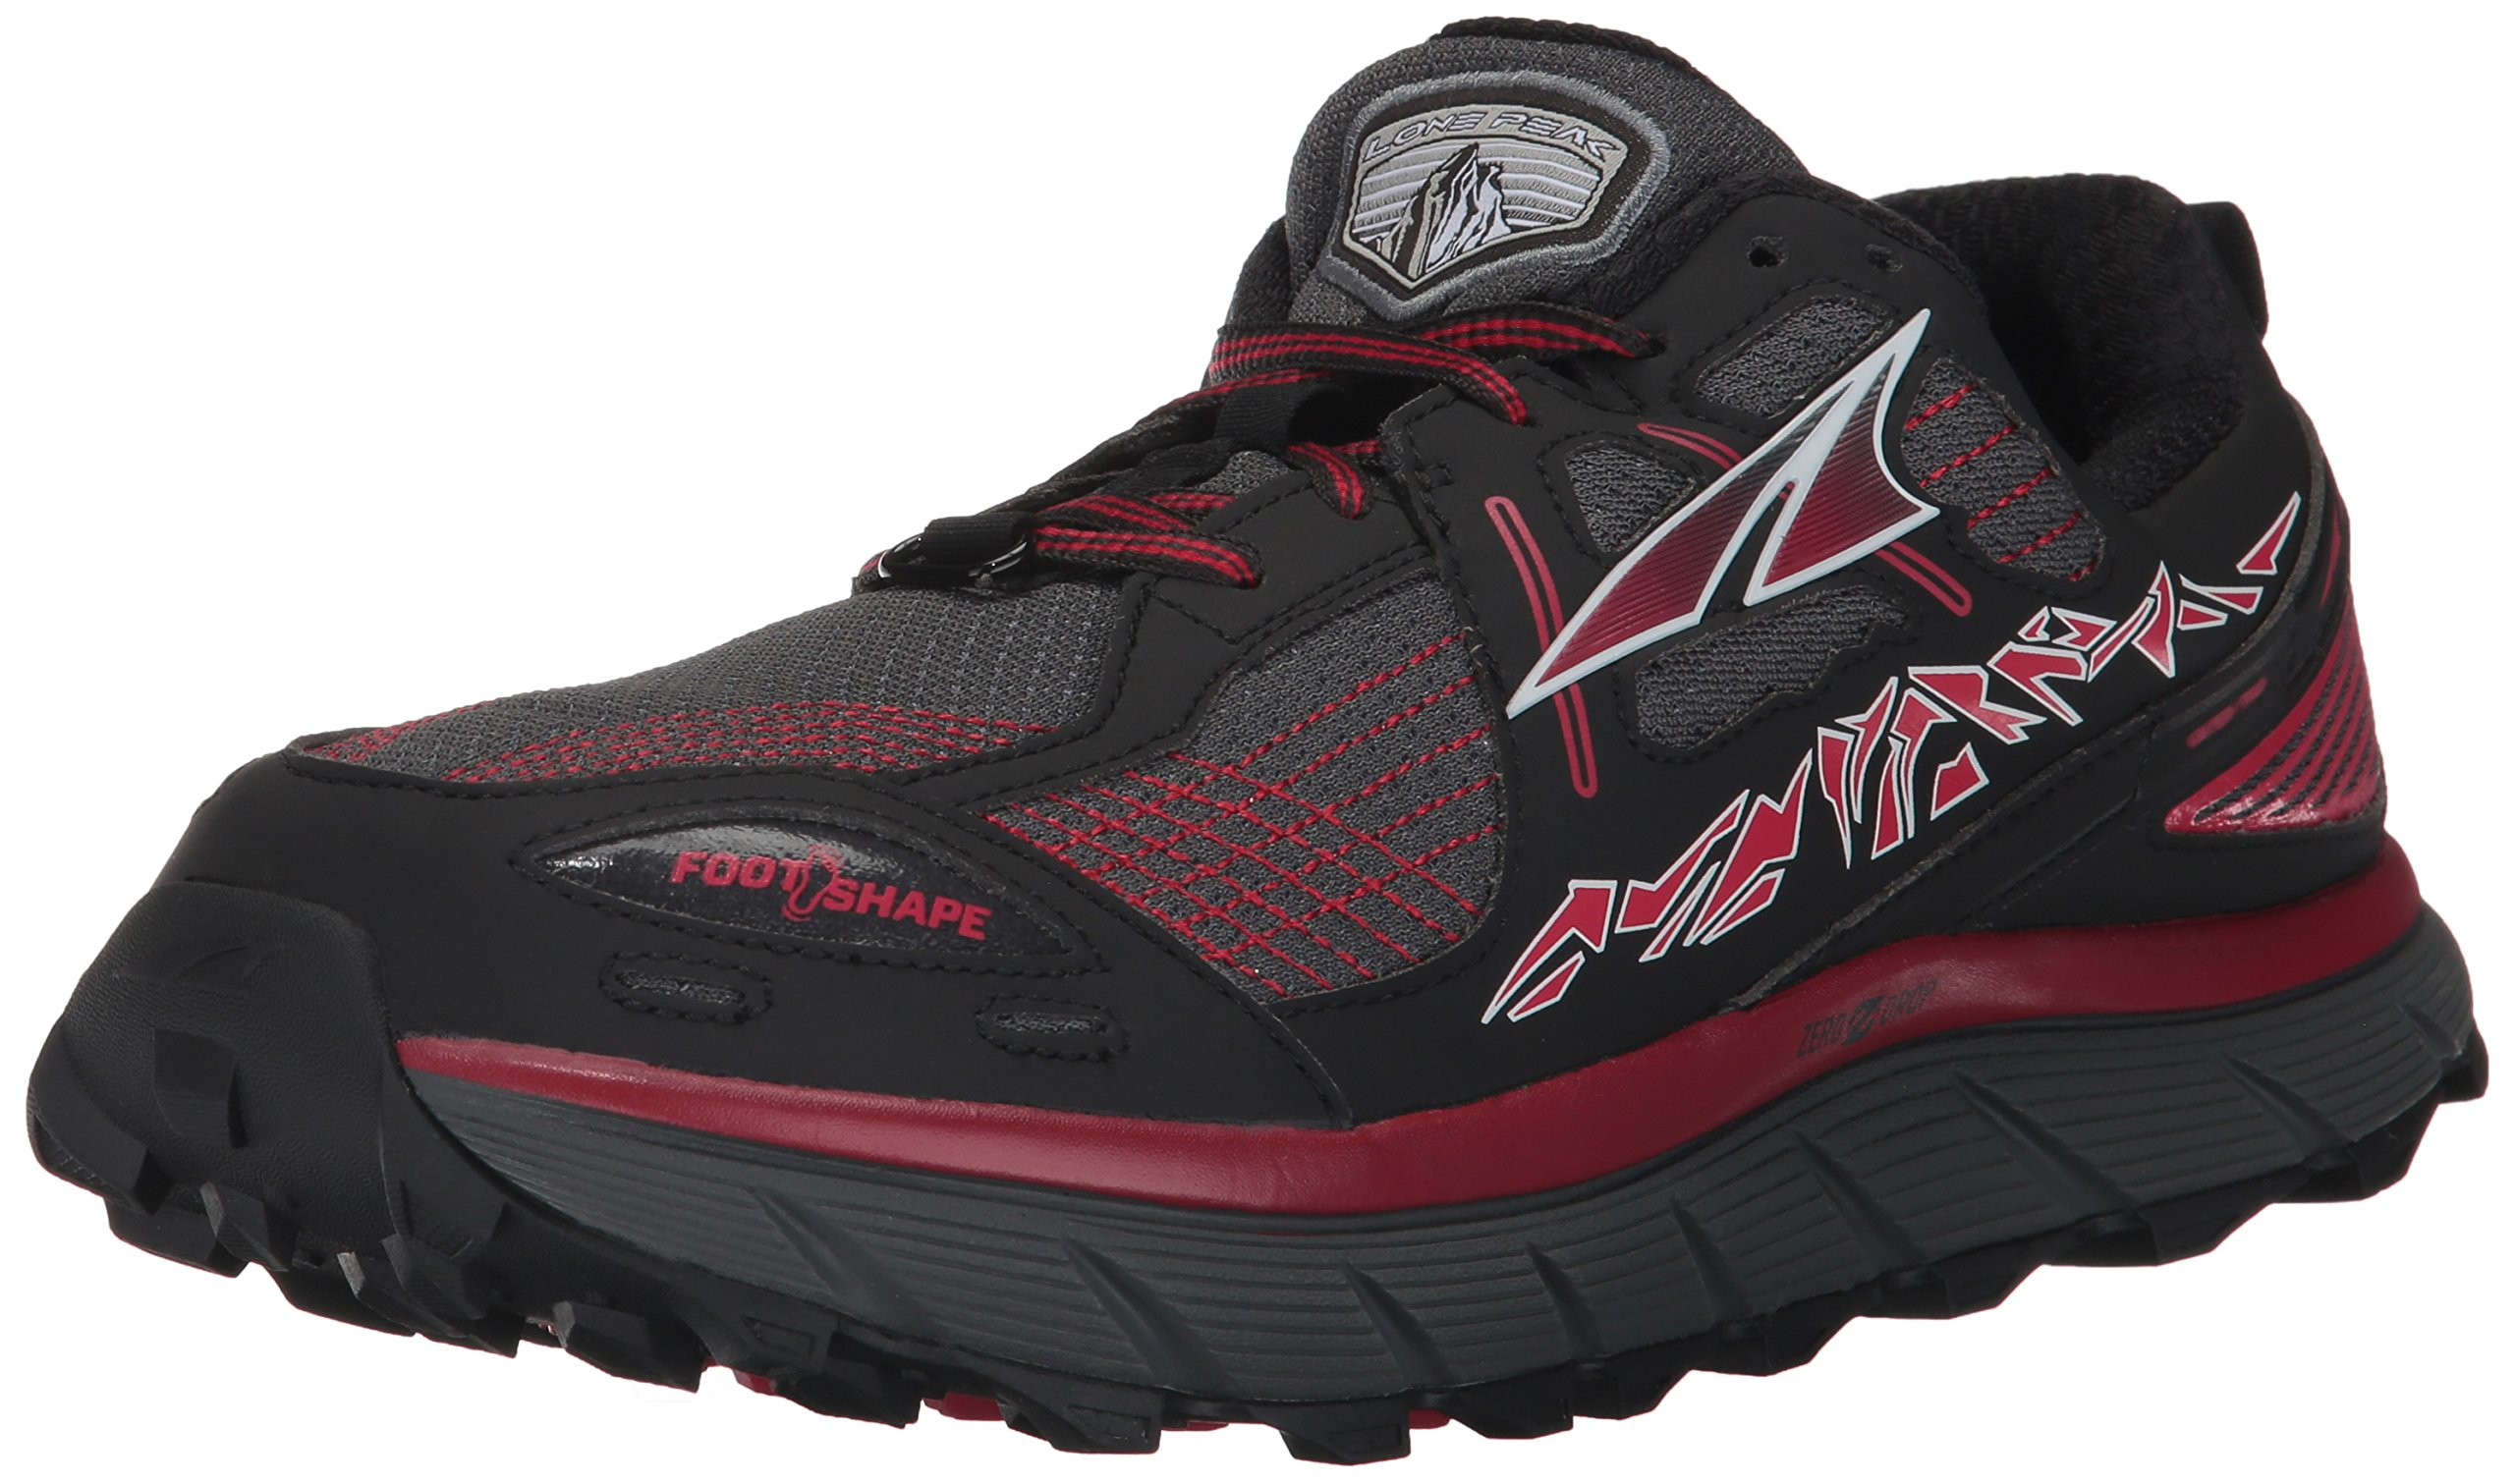 Altra Men's Lone Peak 3.5 Running Shoe, Red, 8.5 D US by Altra